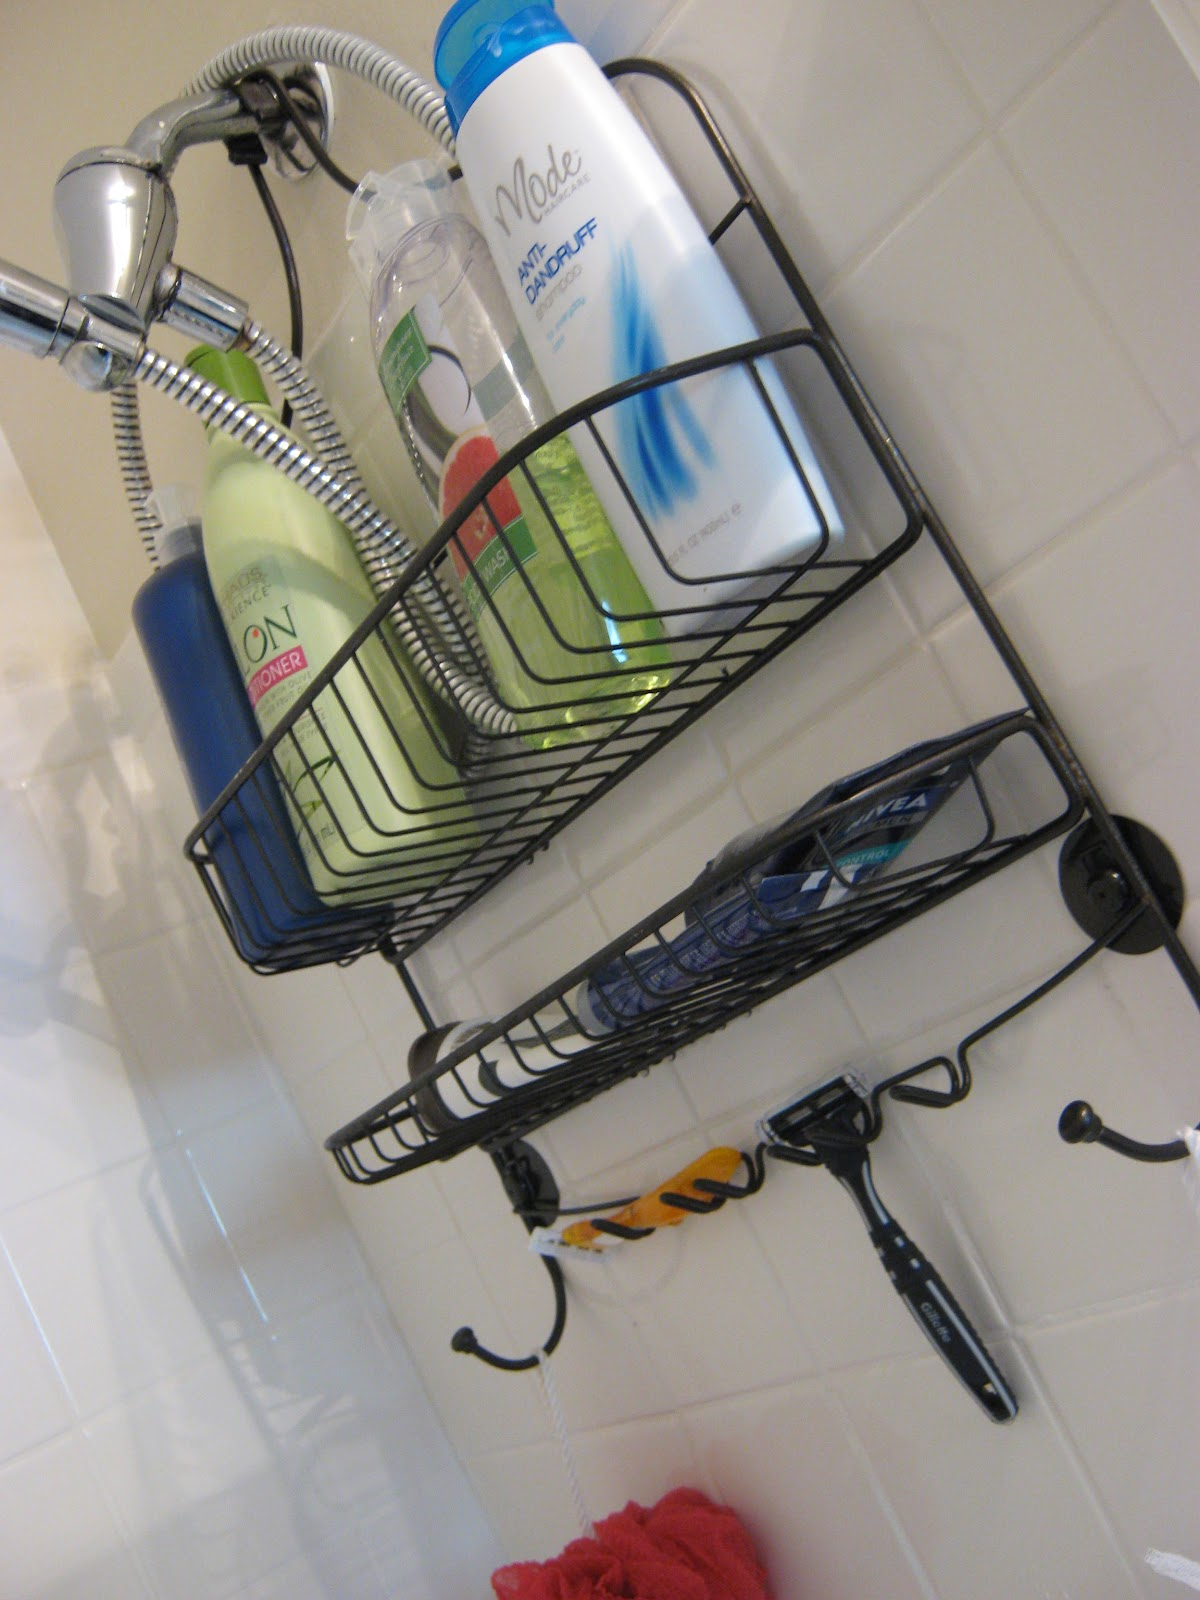 Fake-It Frugal: Shower Caddy Save!